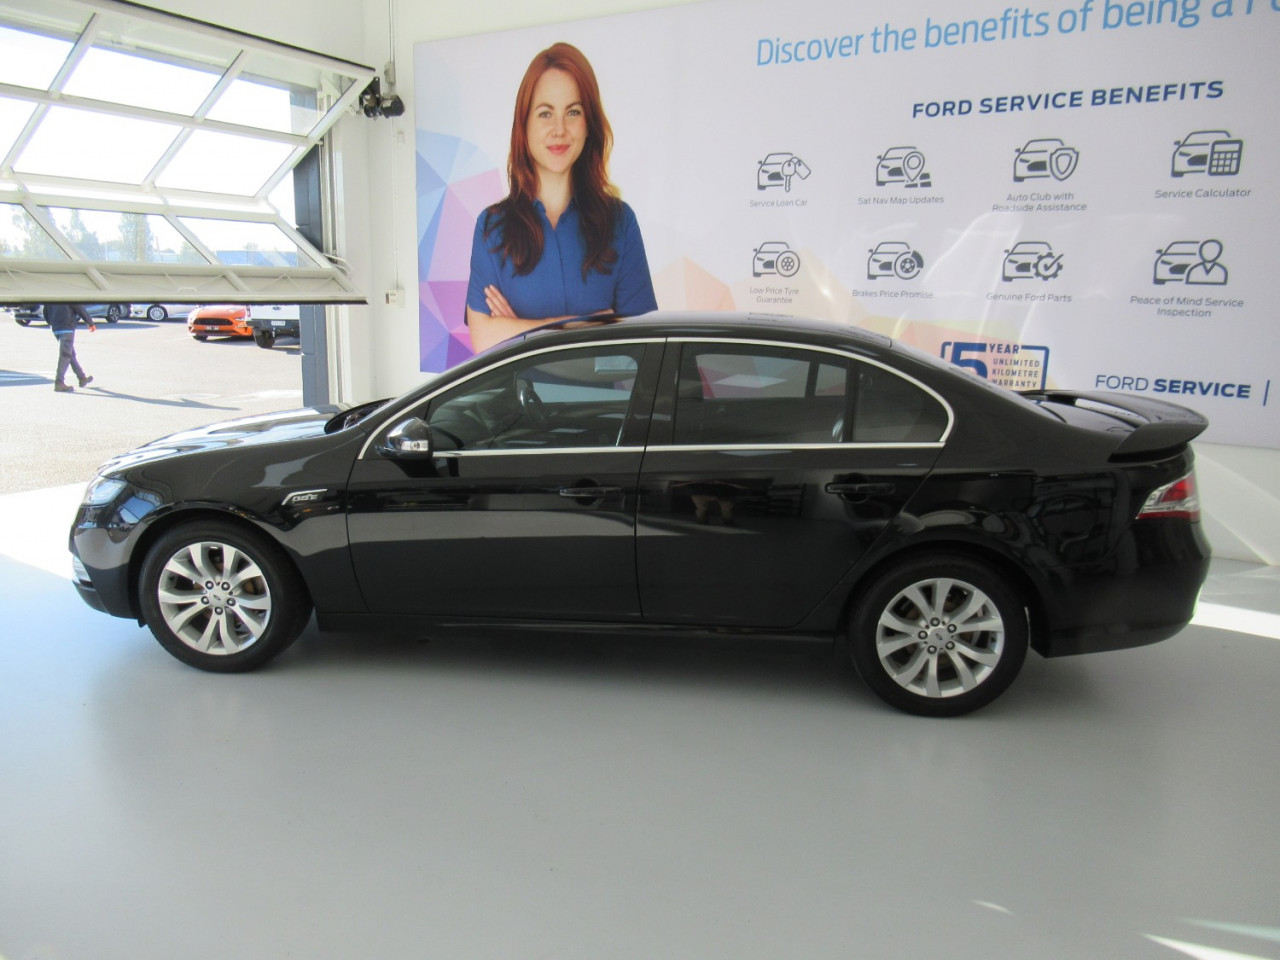 2008 Ford G6 Series FG G6E Sedan Image 10